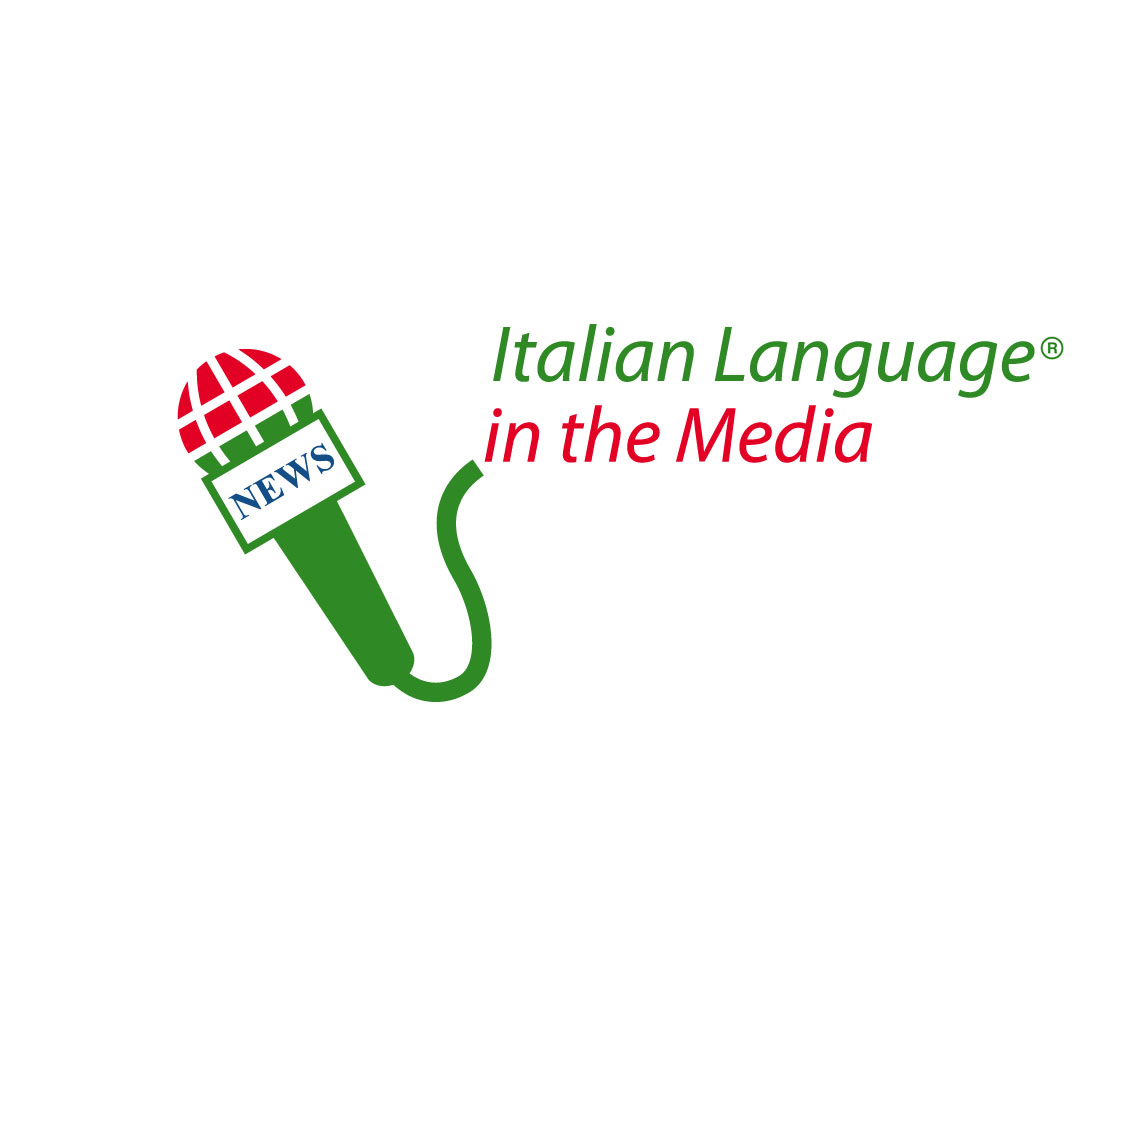 Italian Language in the Media